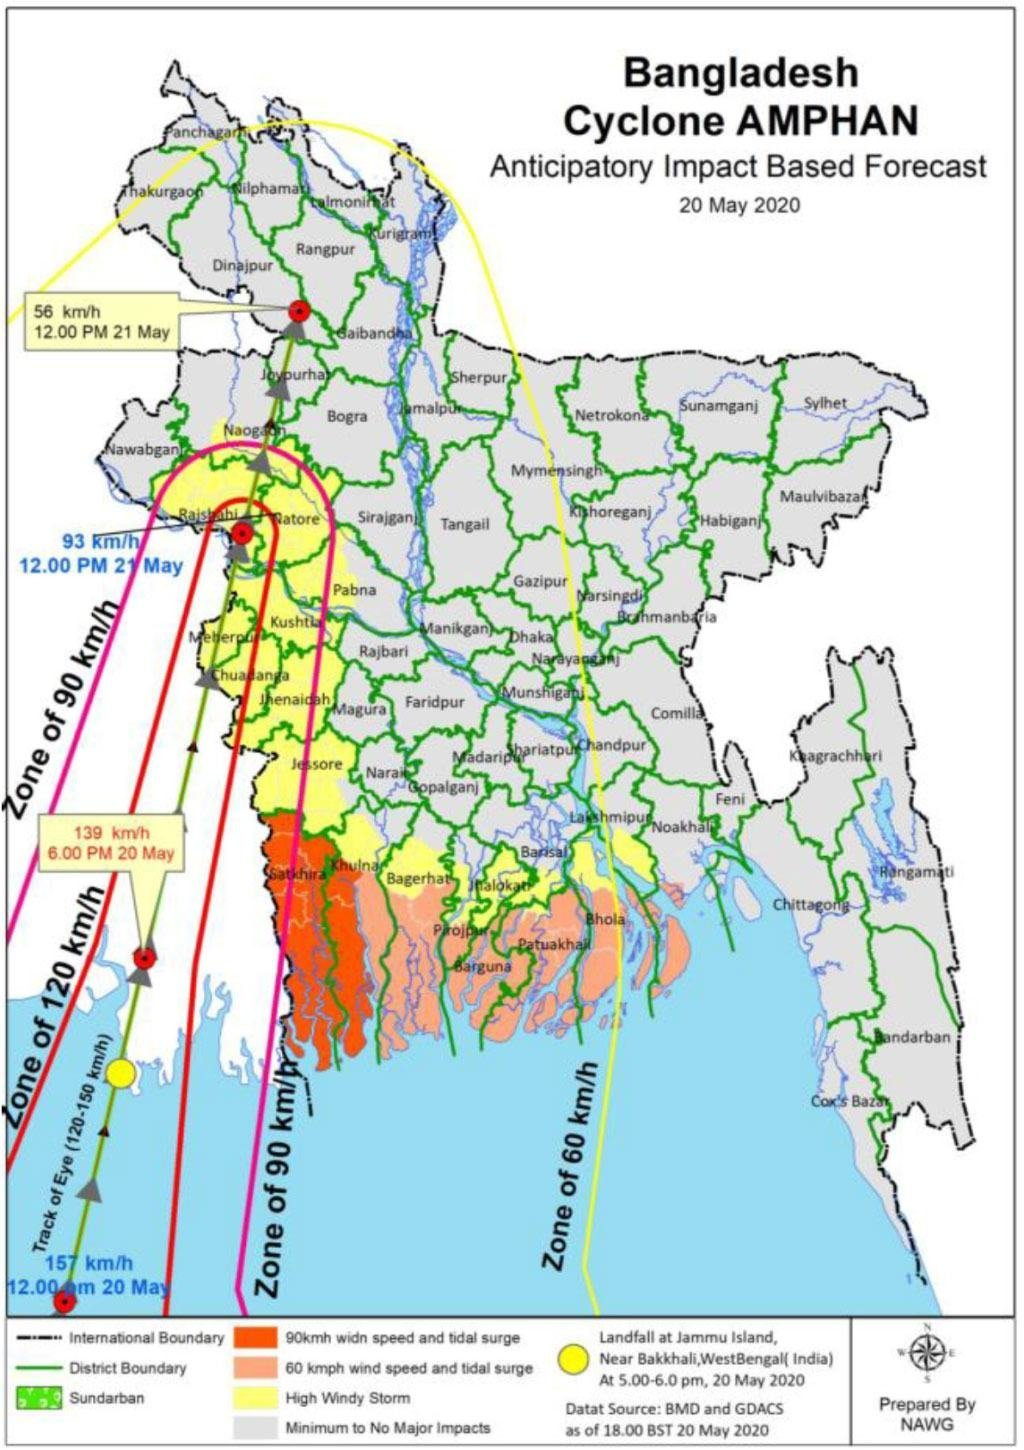 Situation overview and anticipated impact of Cyclone Amphan in Bangladesh.